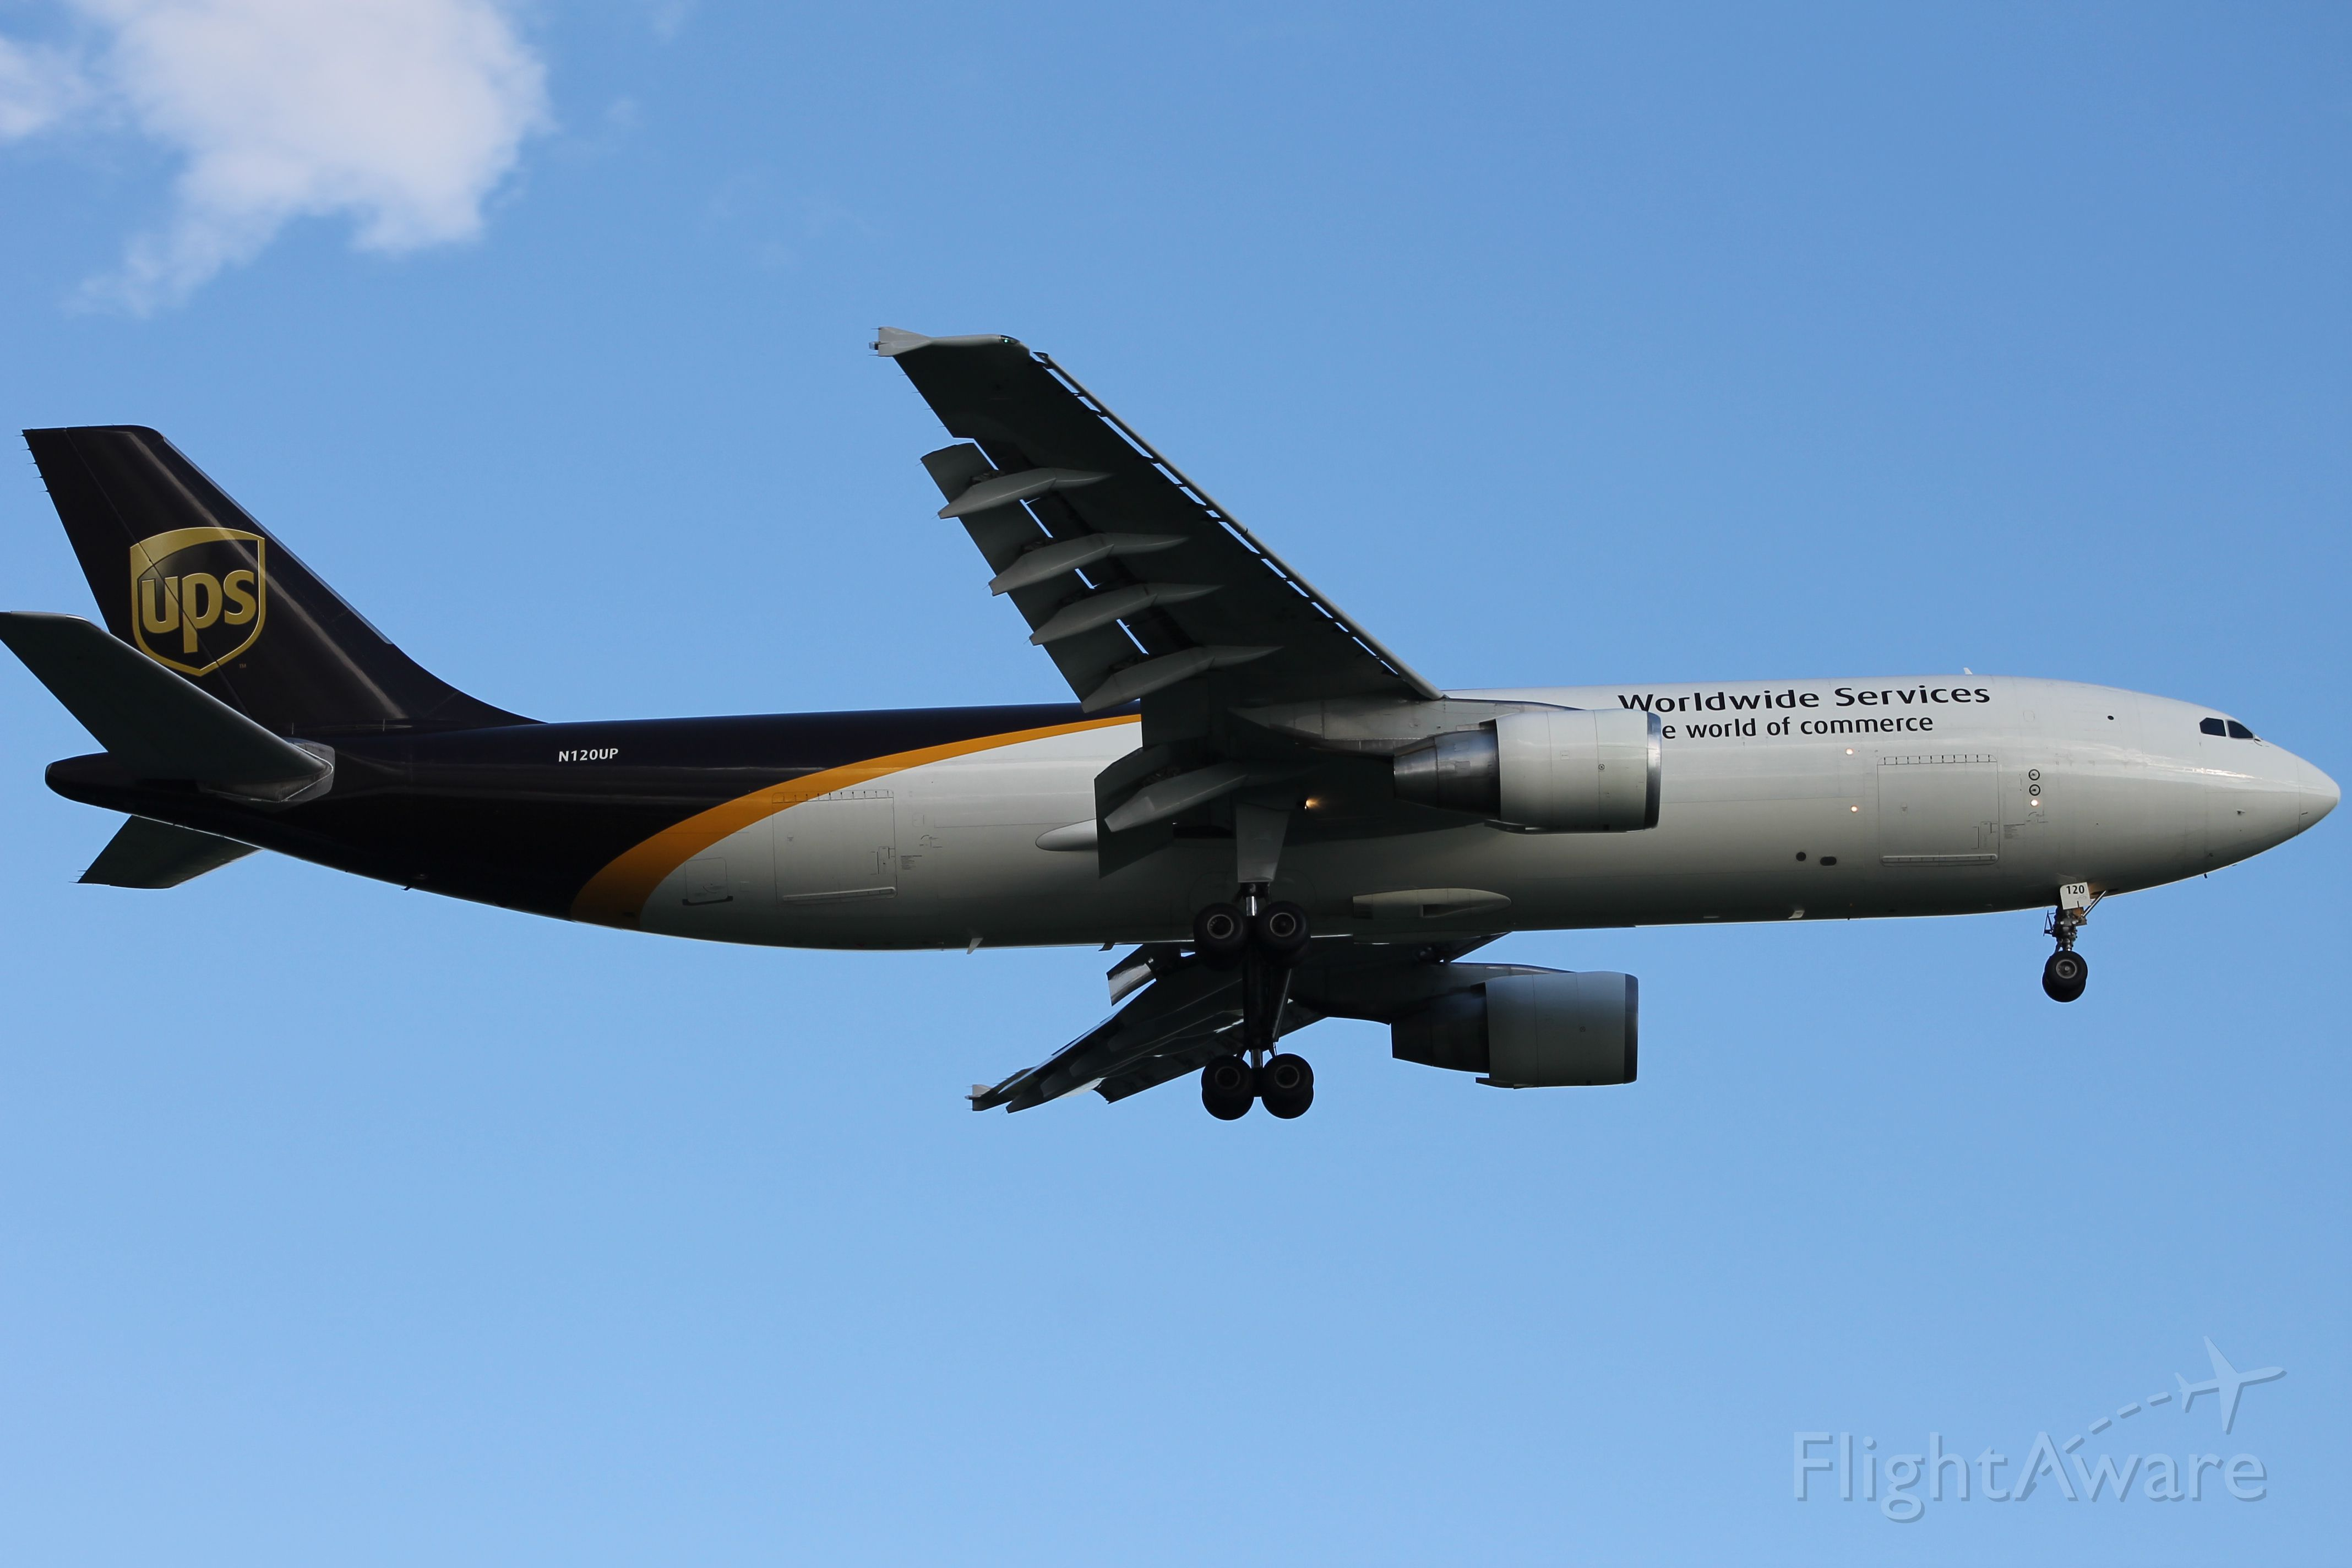 Airbus A300F4-600 (N120UP)